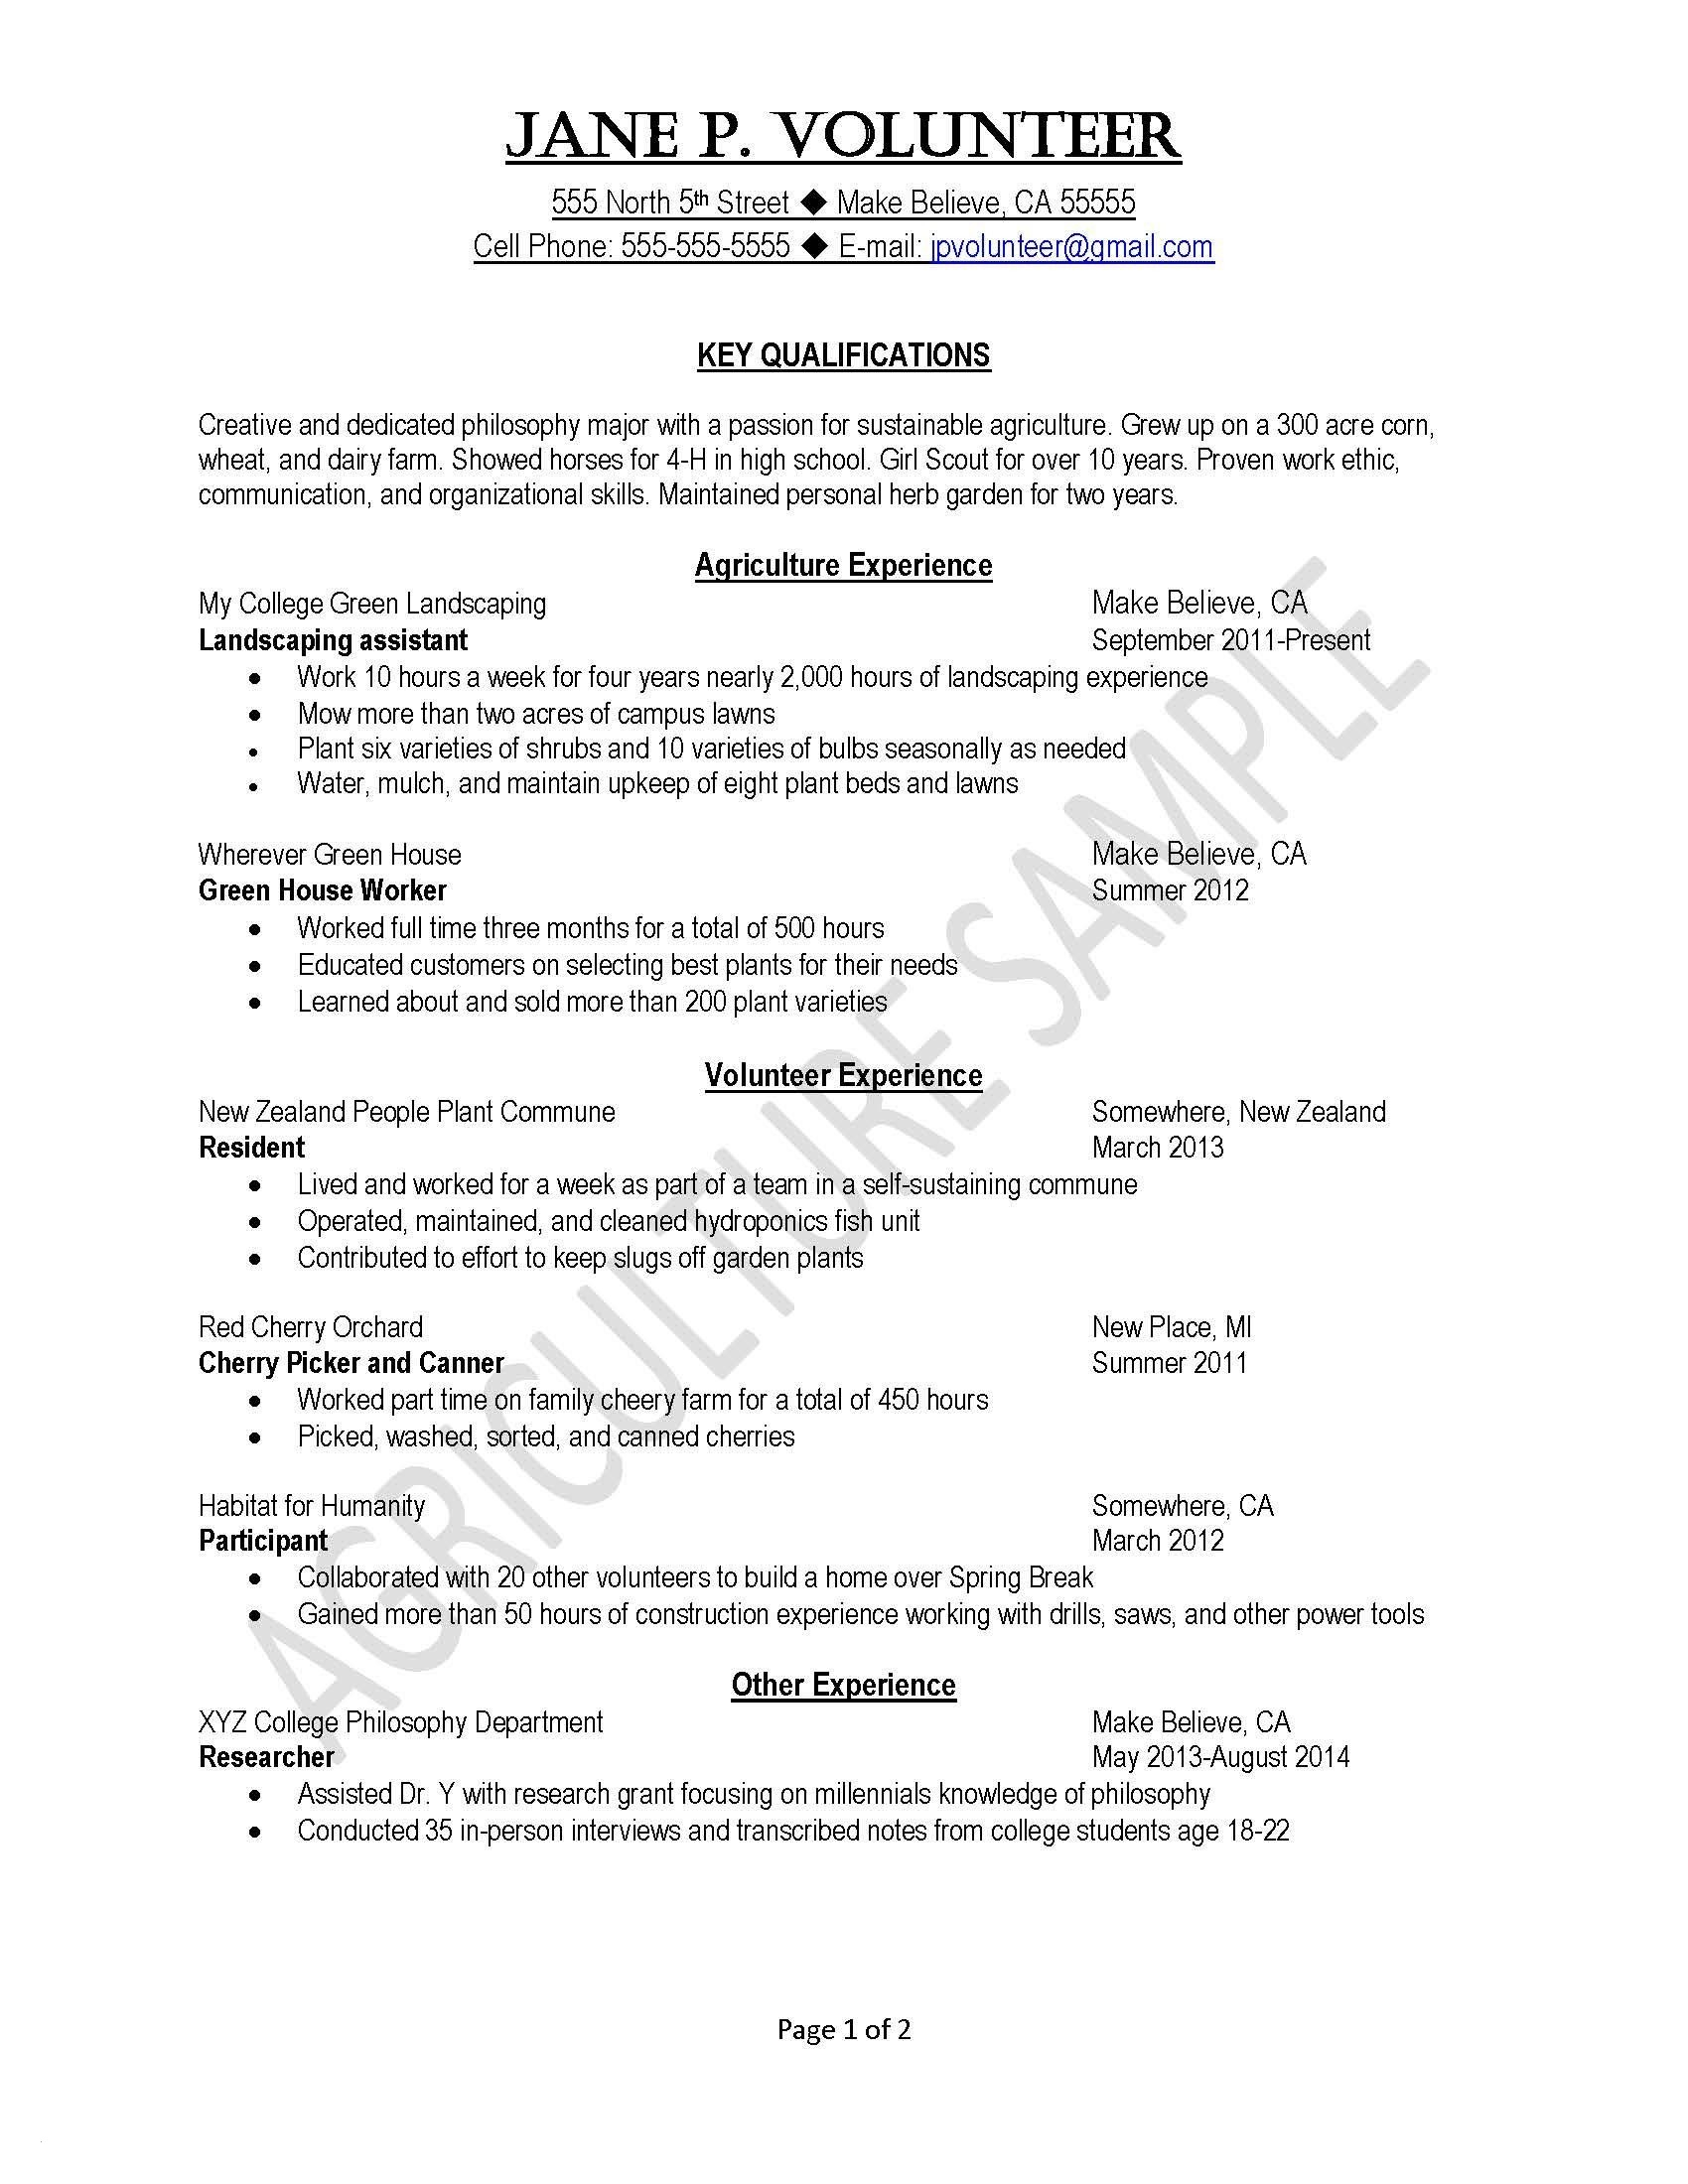 Resume Templates for College Students - Resume Templates for College Applications Awesome Awesome Sample